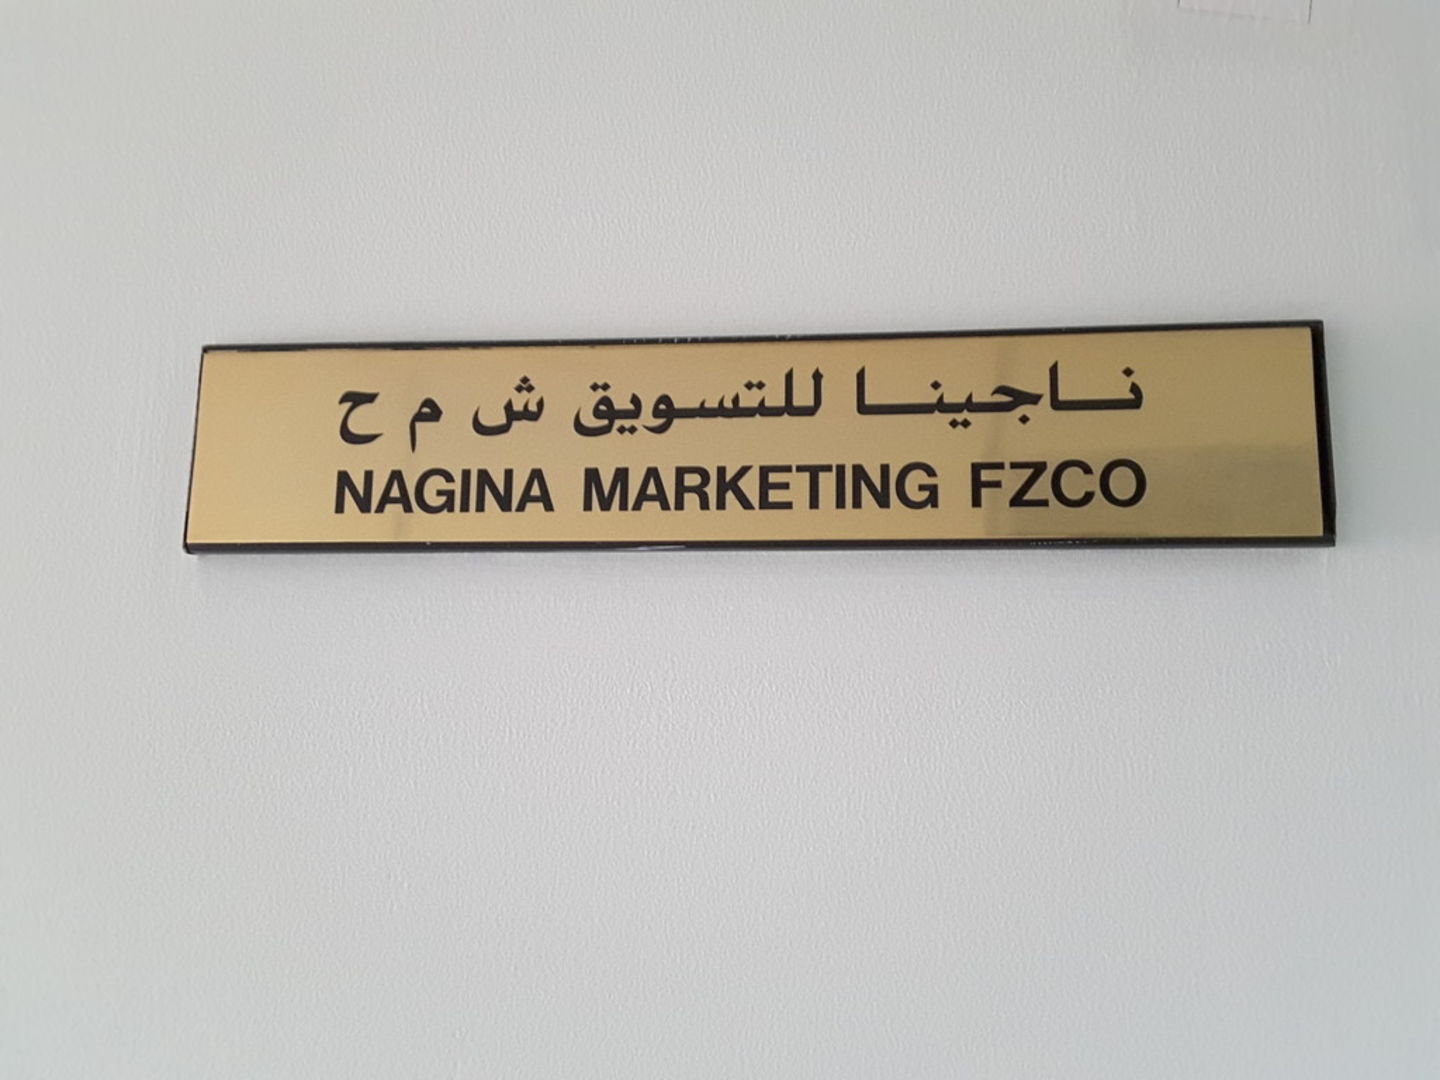 HiDubai-business-nagina-marketing-fzco-b2b-services-distributors-wholesalers-jebel-ali-free-zone-mena-jebel-ali-dubai-2